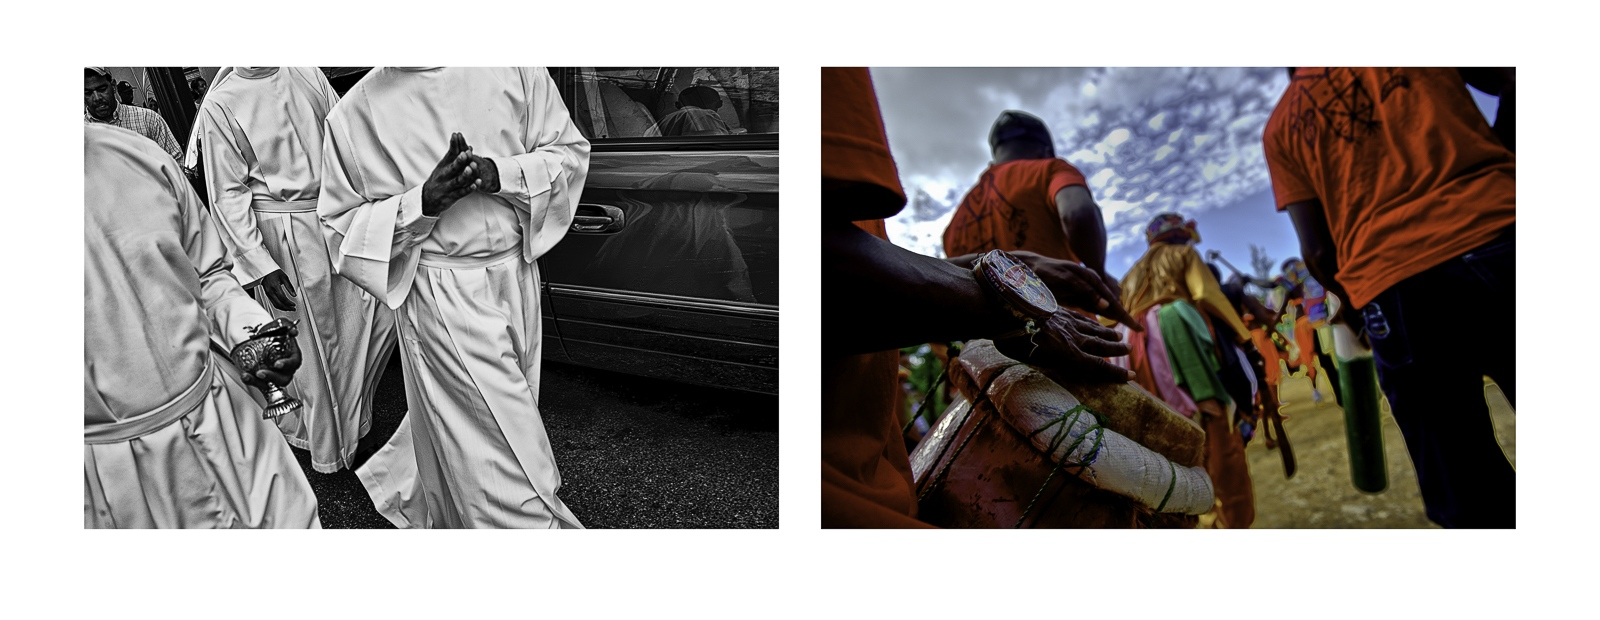 Art and Documentary Photography - Loading _1_Procesion._2011____PFN.jpg